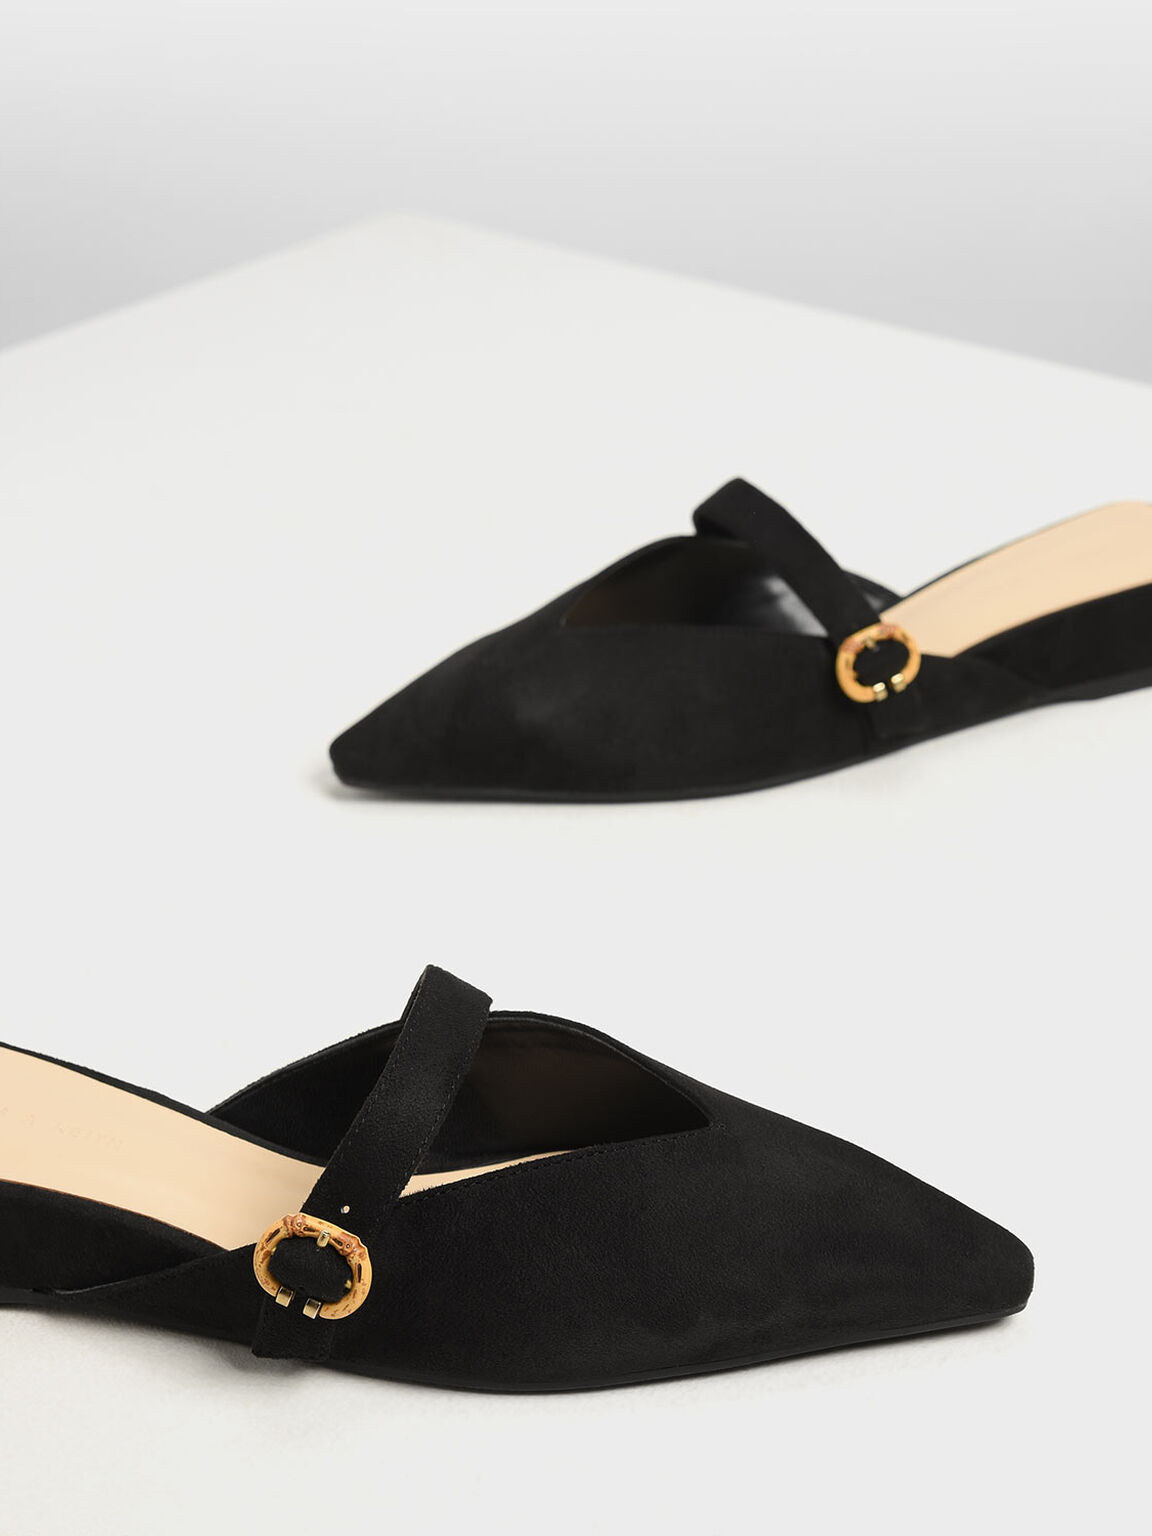 V-Cut Low Wedge Mules, Black Textured, hi-res